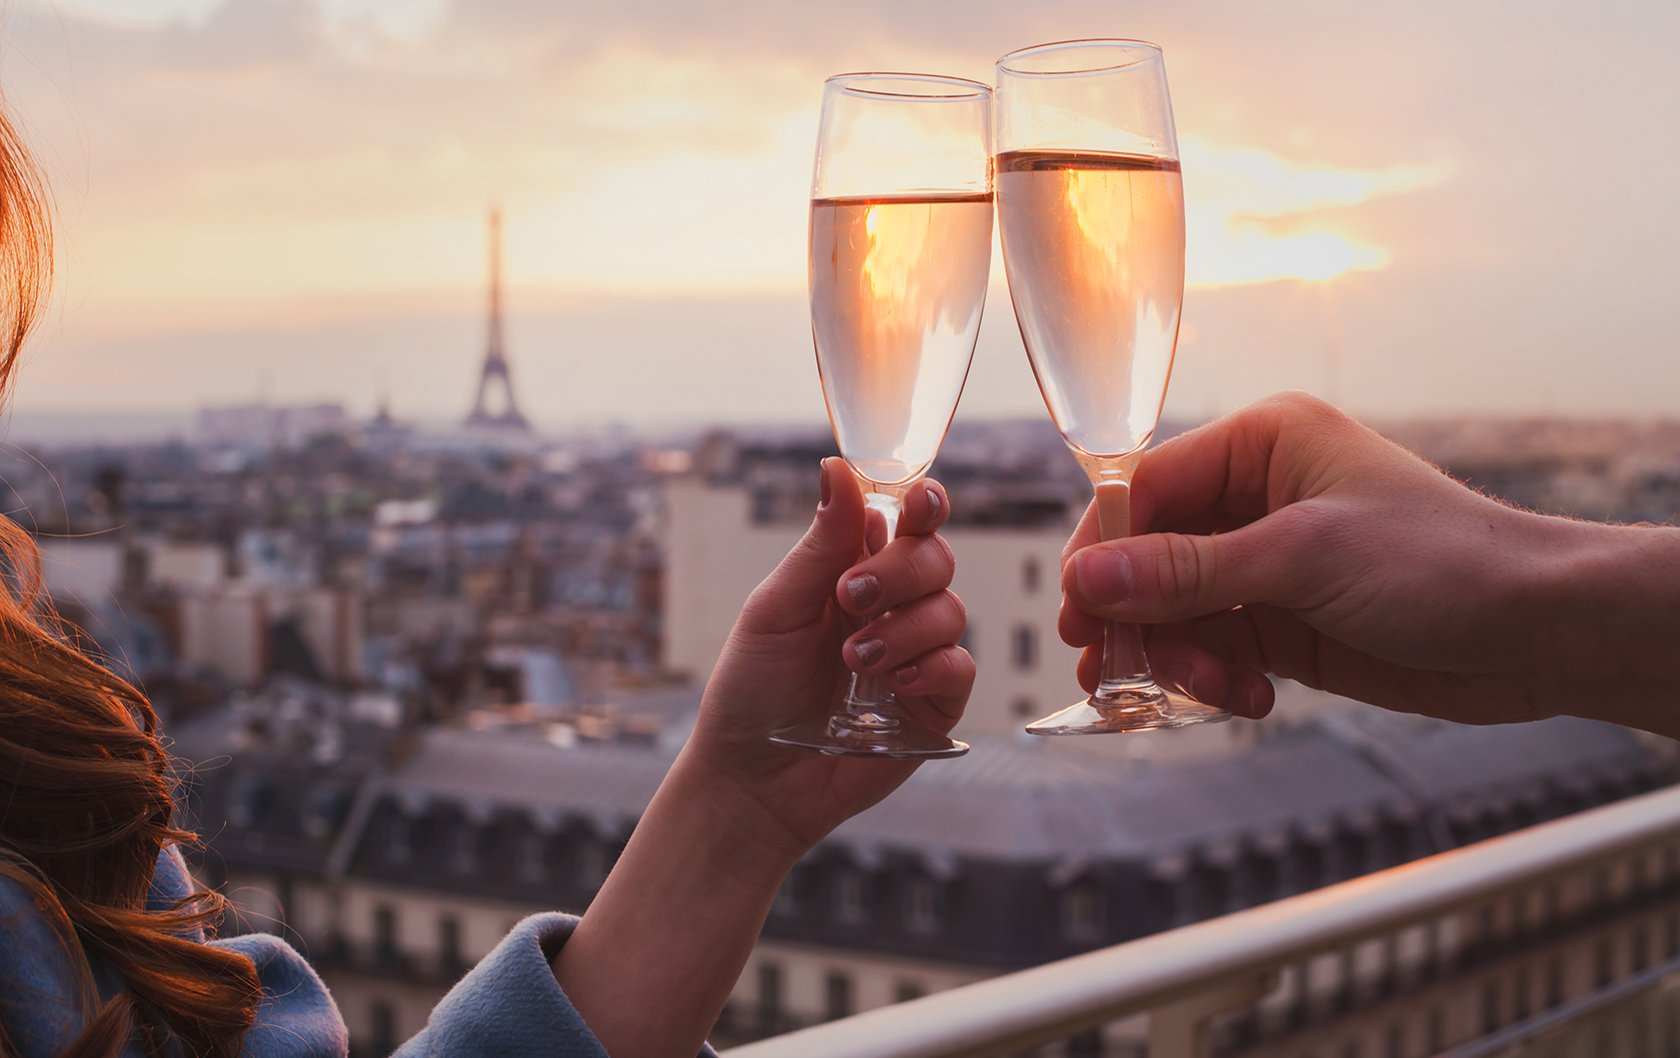 Romantic Champagne toast in Paris